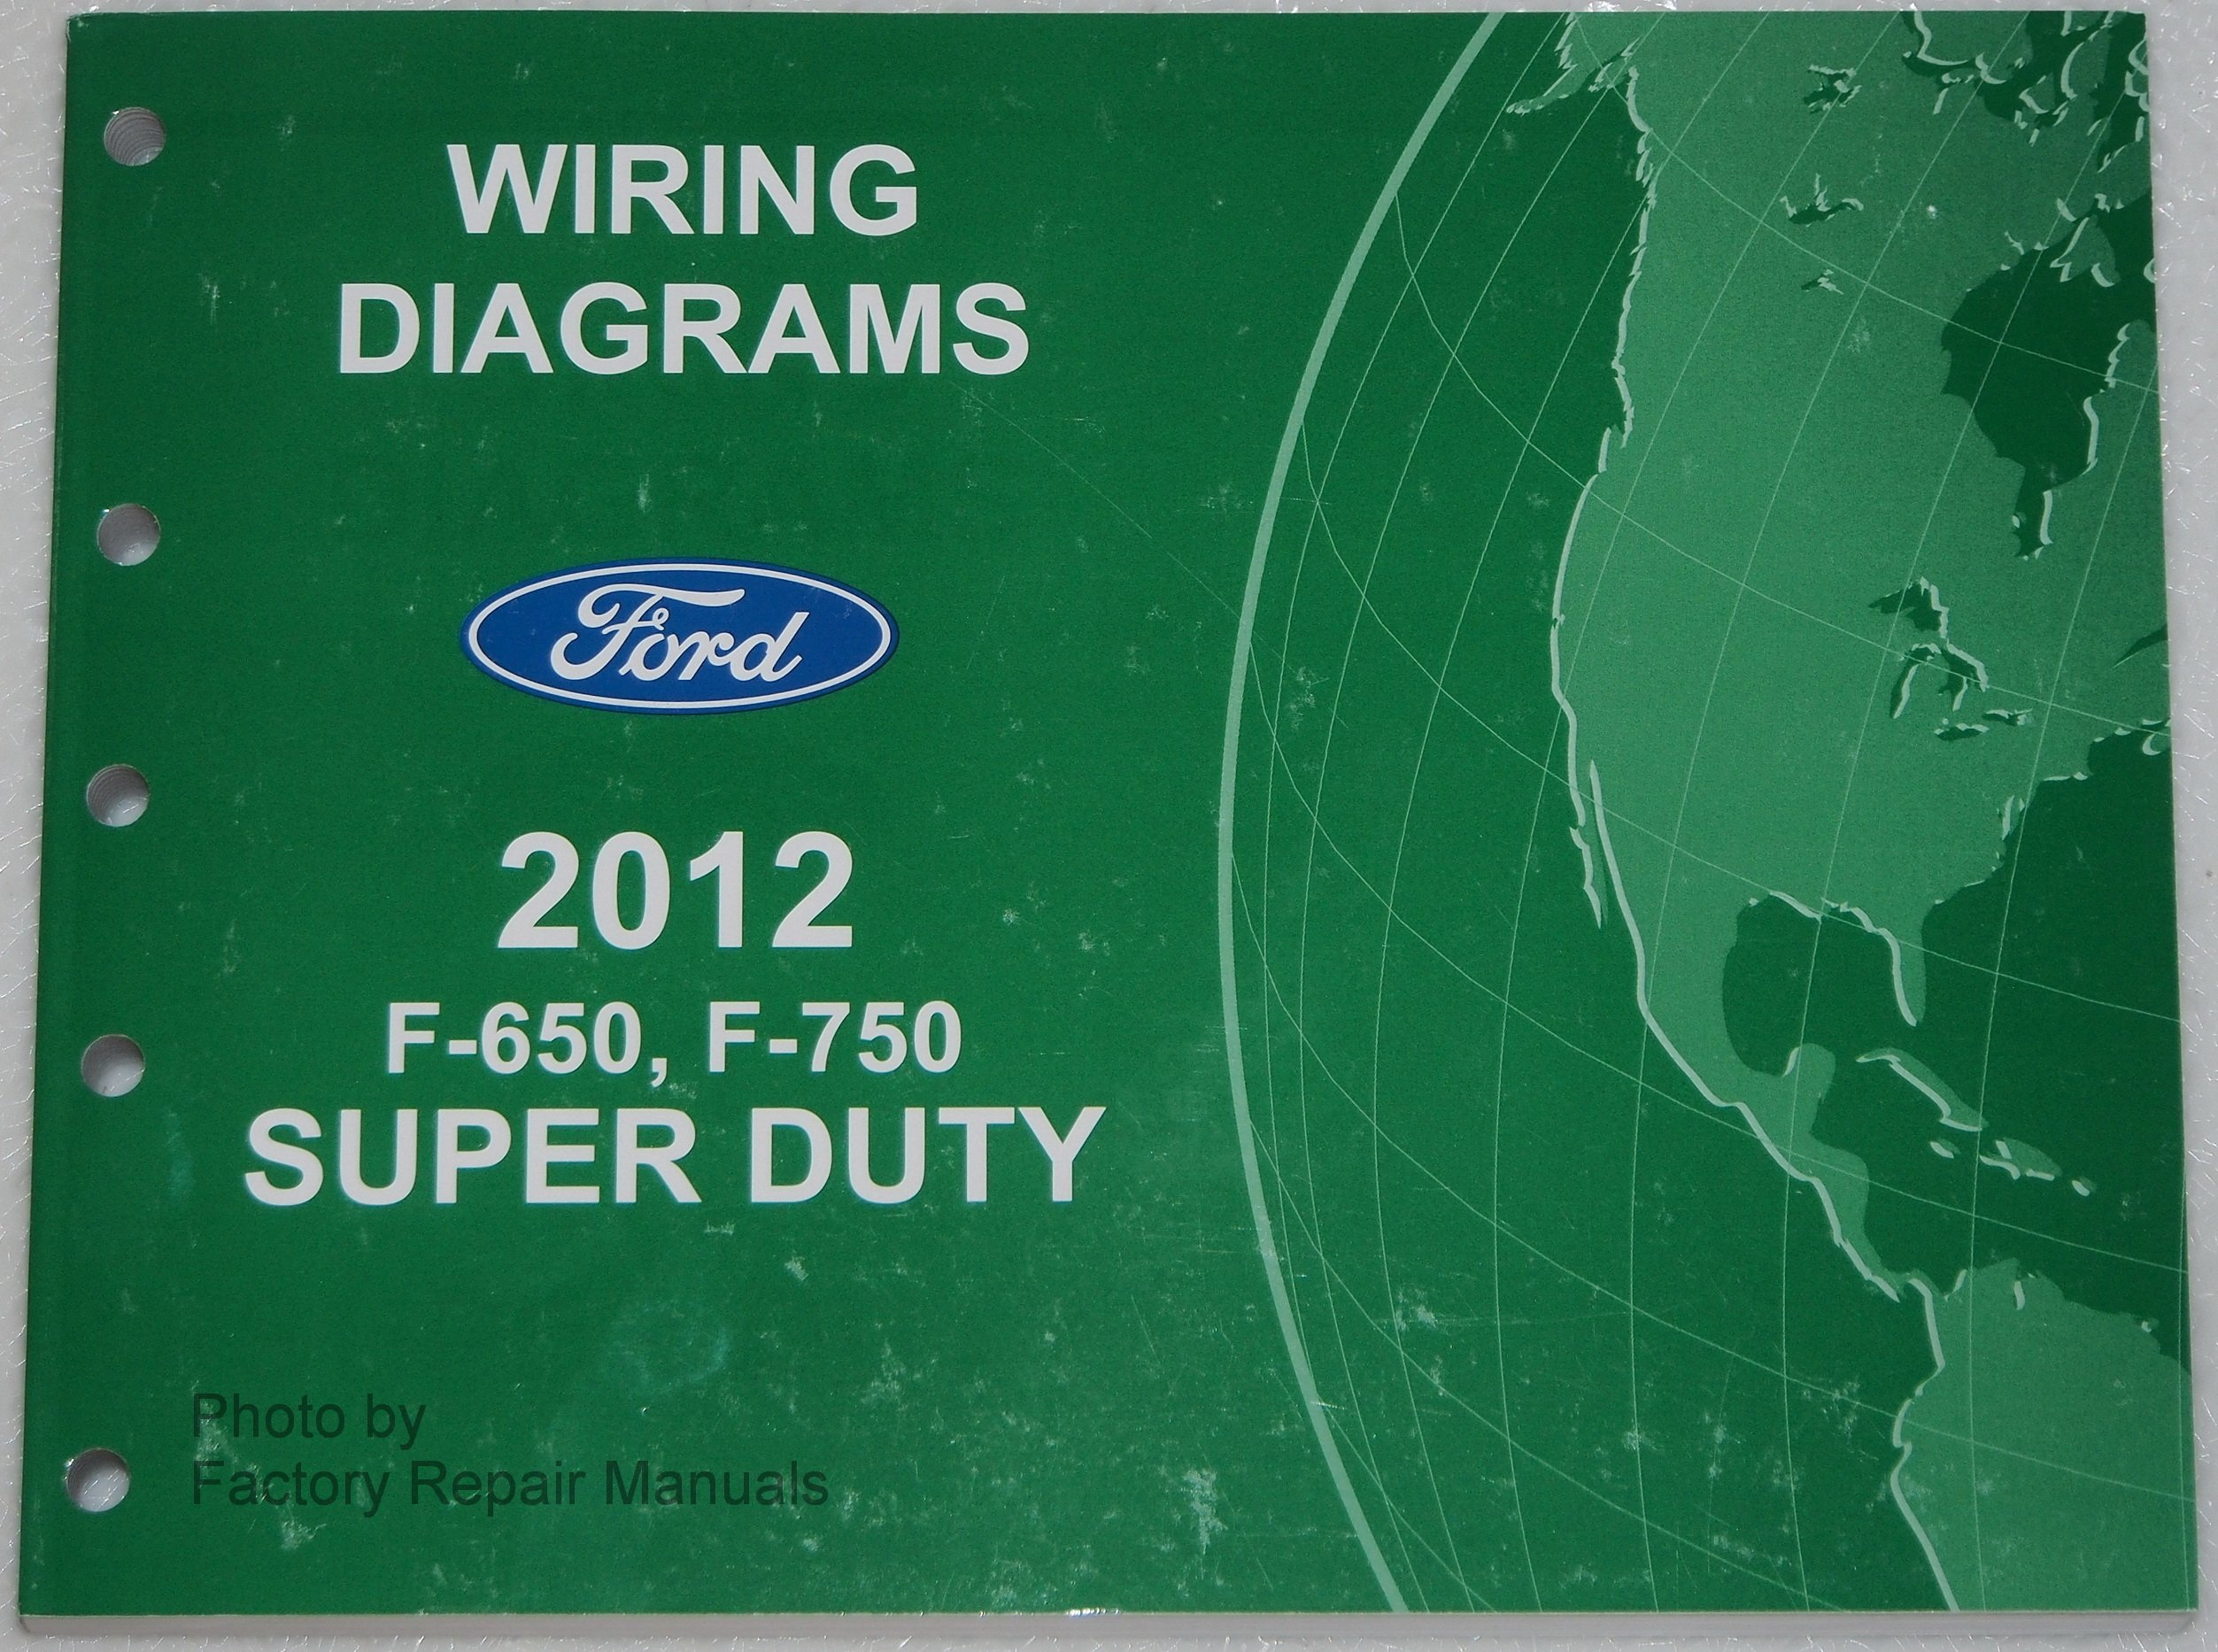 F750 Wiring Diagram Ford F500 2012 F650 Motor Company Amazon Com Booksf750 12